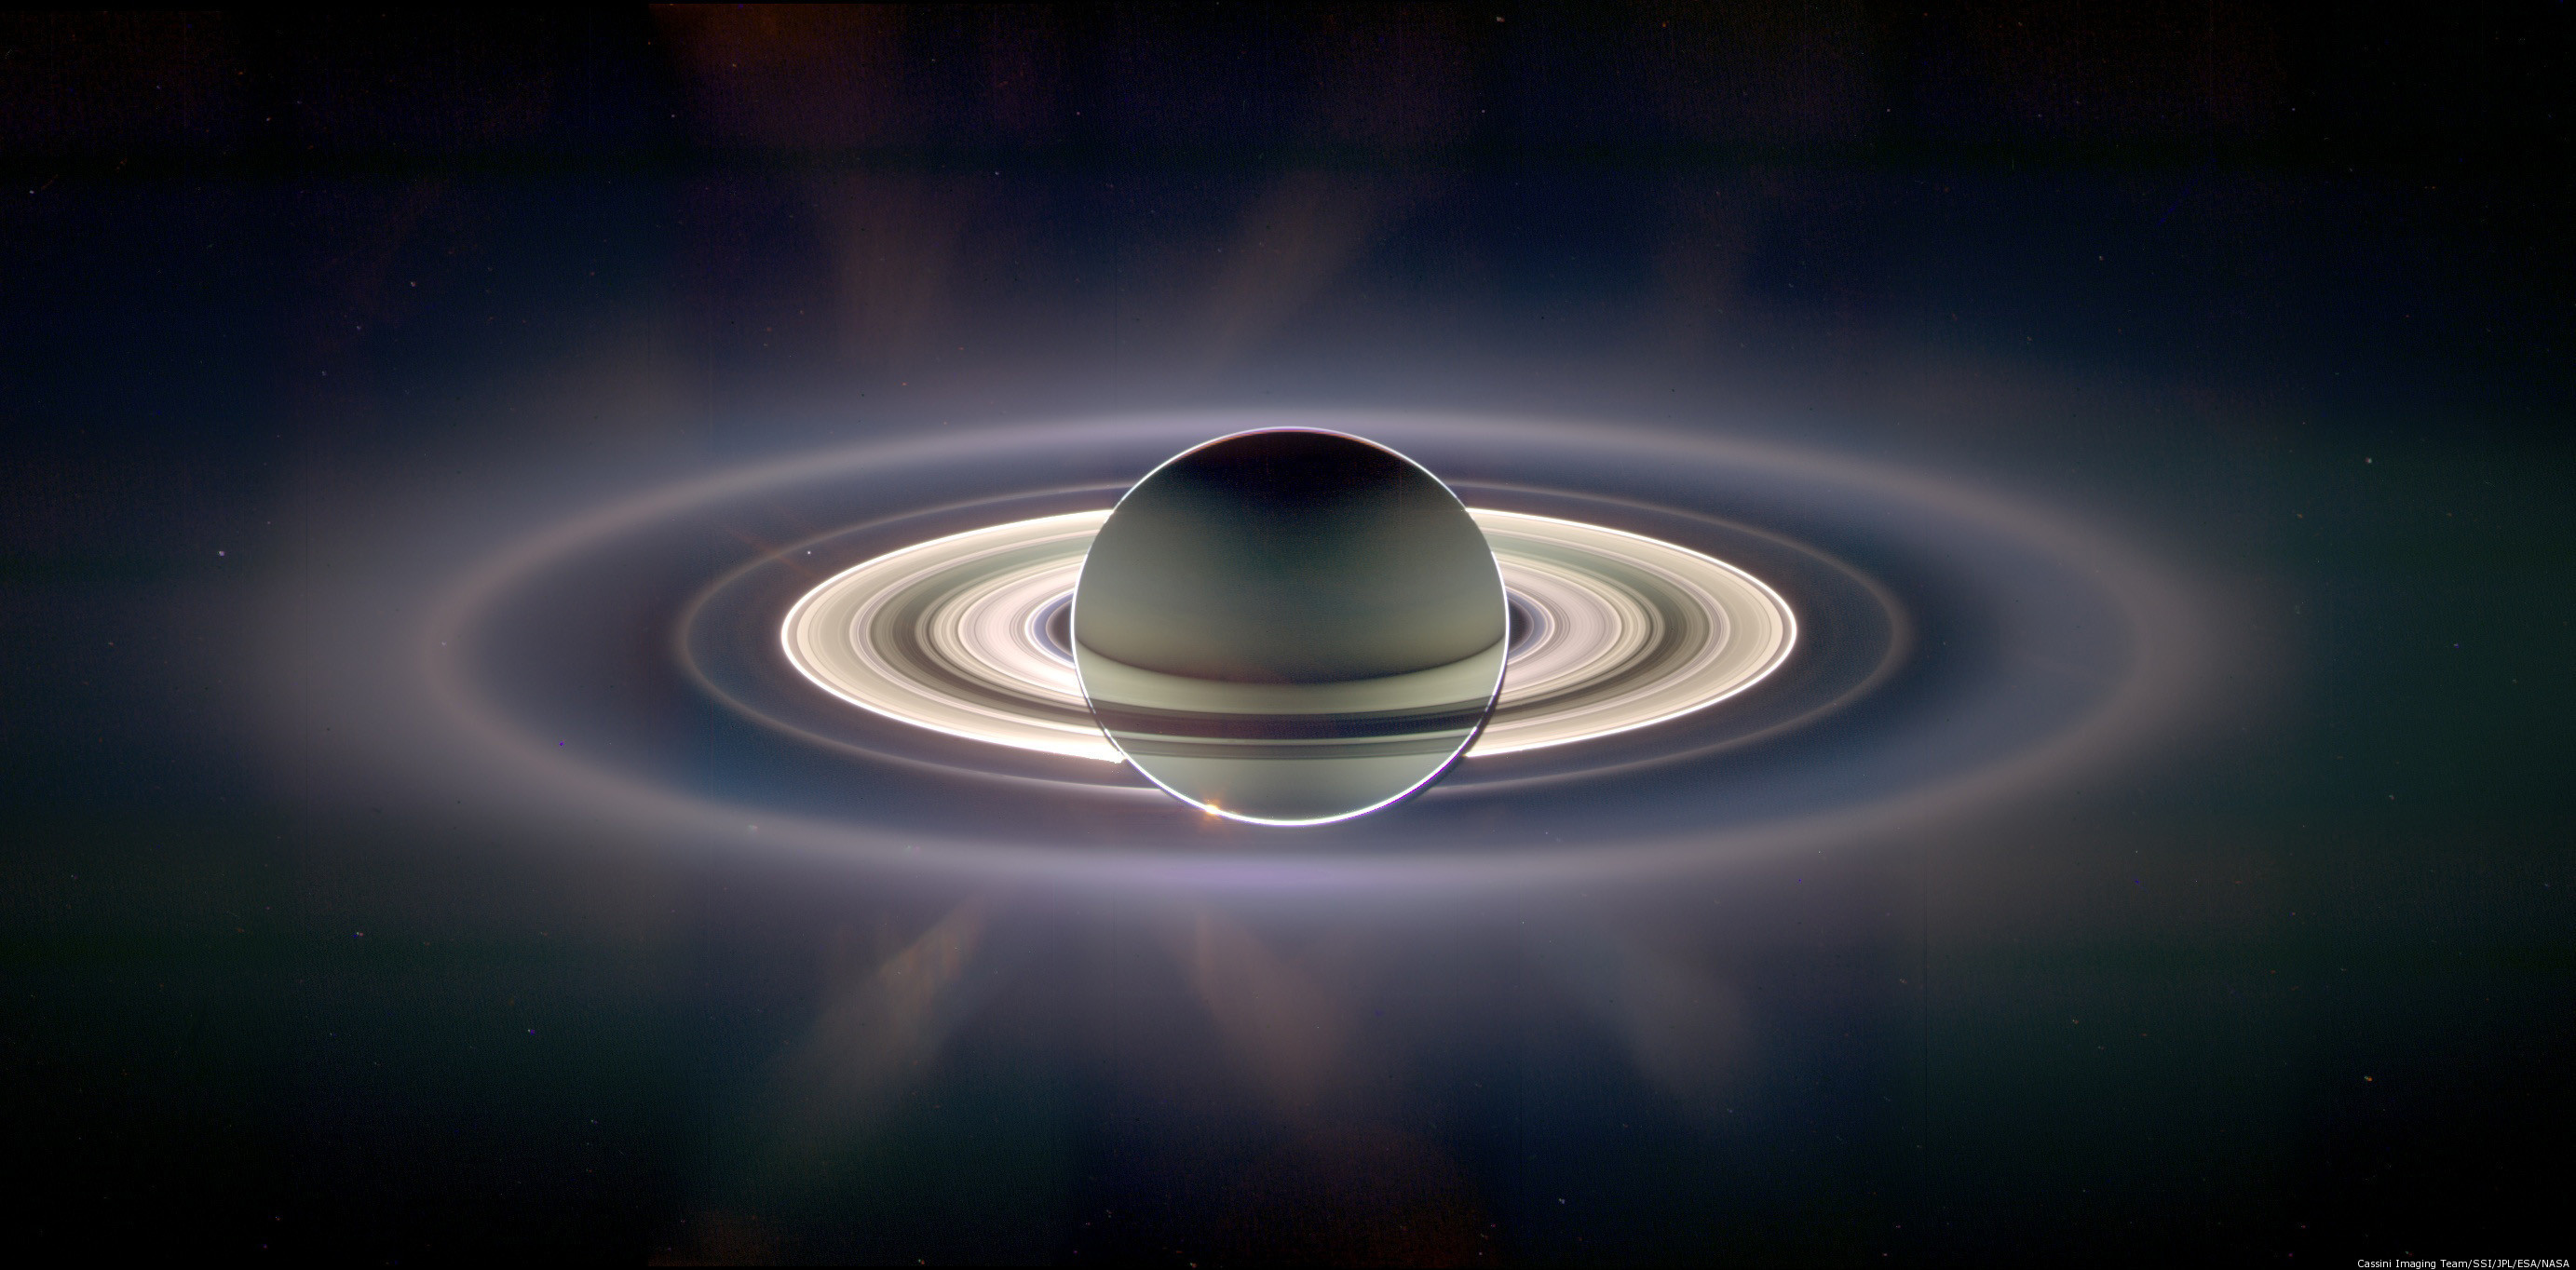 NASA's Cassini spacecraft, which continues to orbit Saturn, captured this picture in 2006 as it floated in the planet's shadow for about 12 hours.